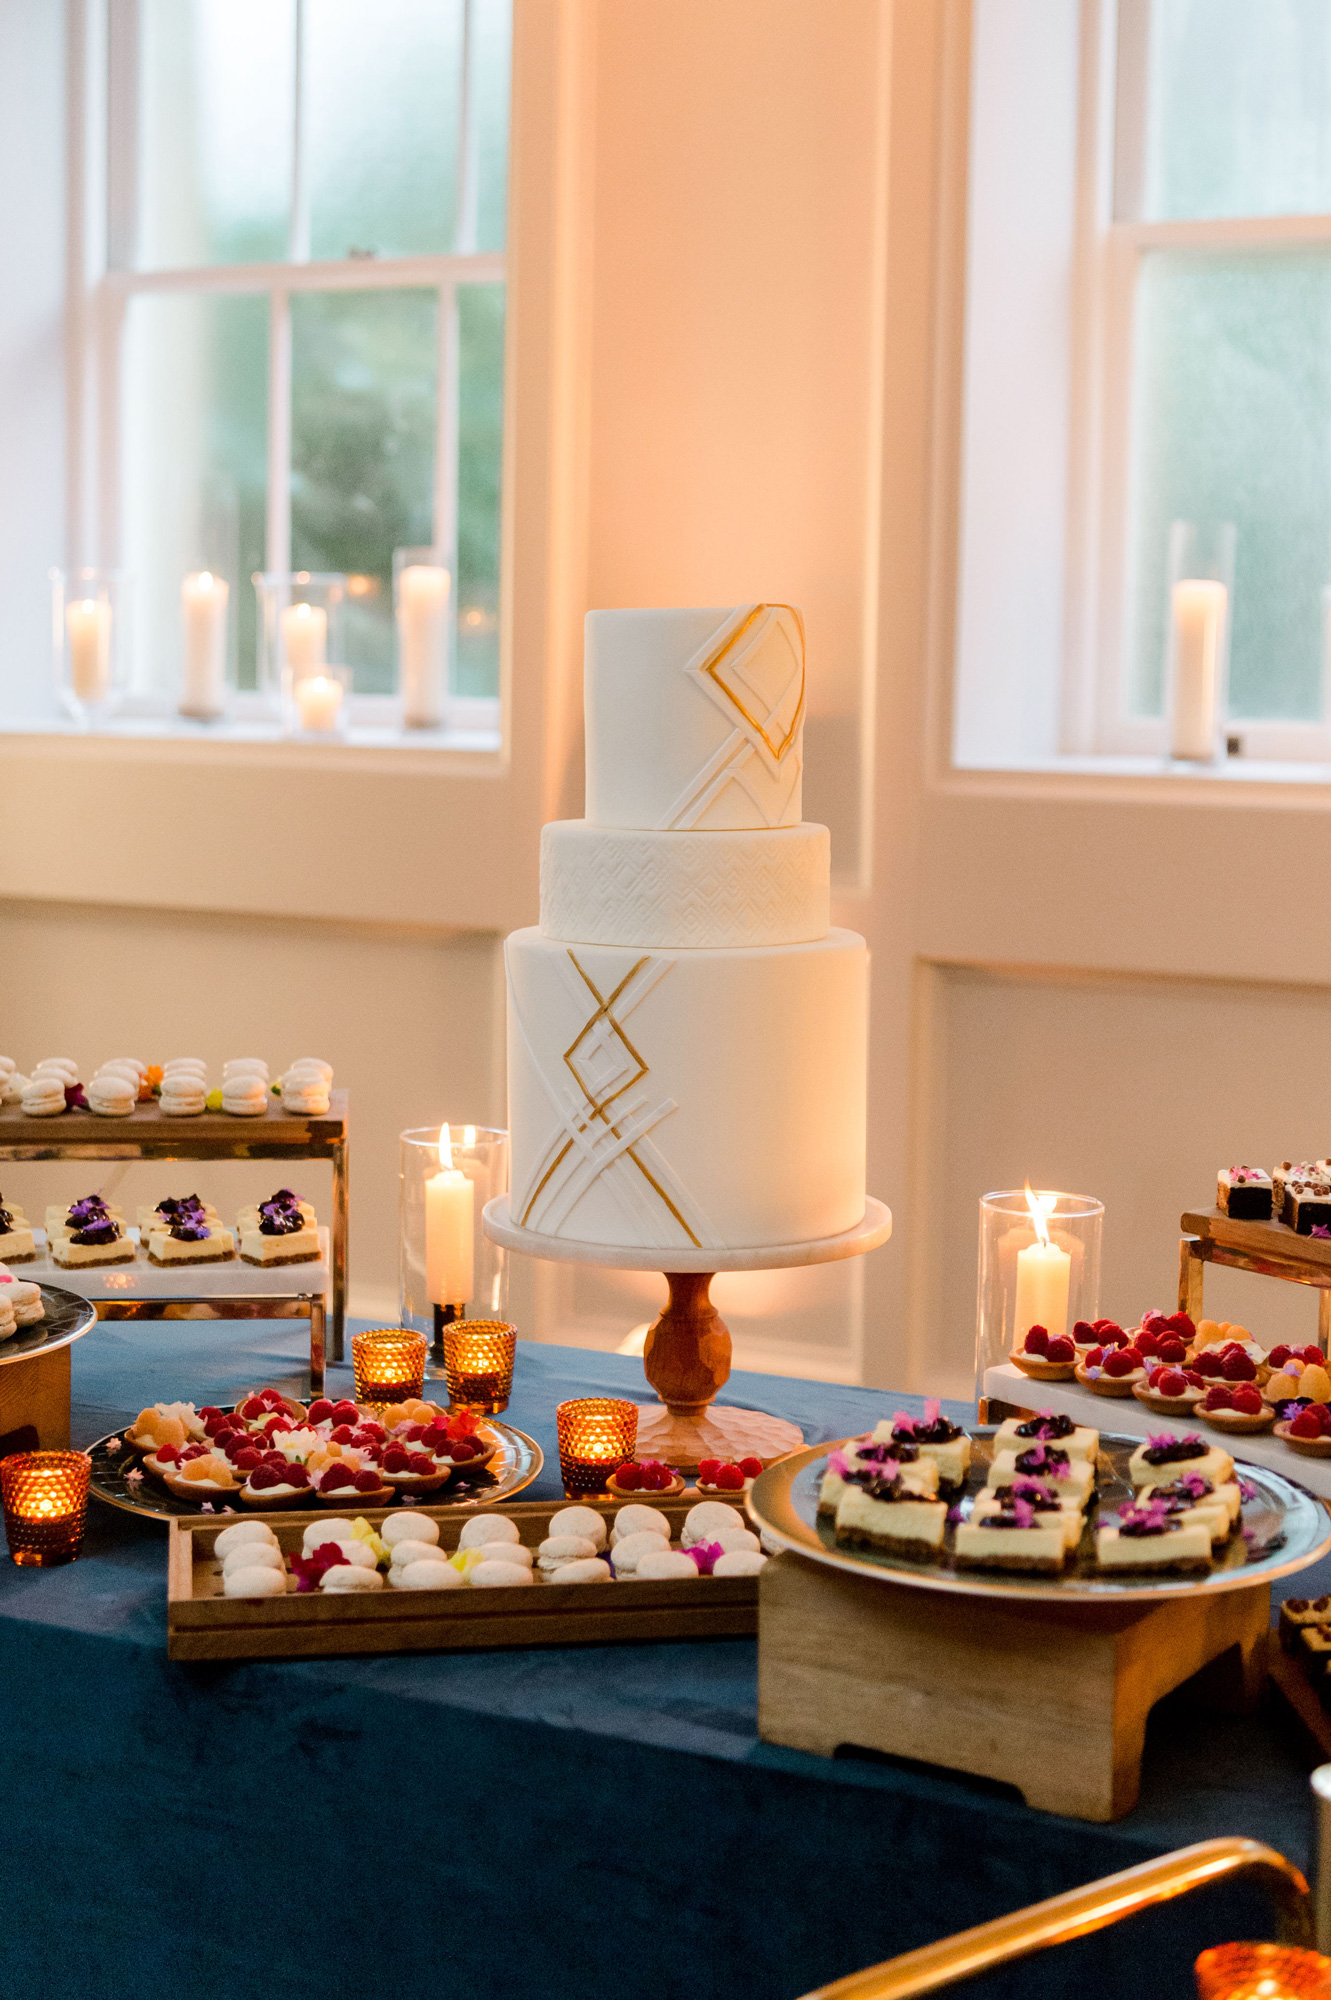 three tier wedding cake surrounded by finger-food desserts